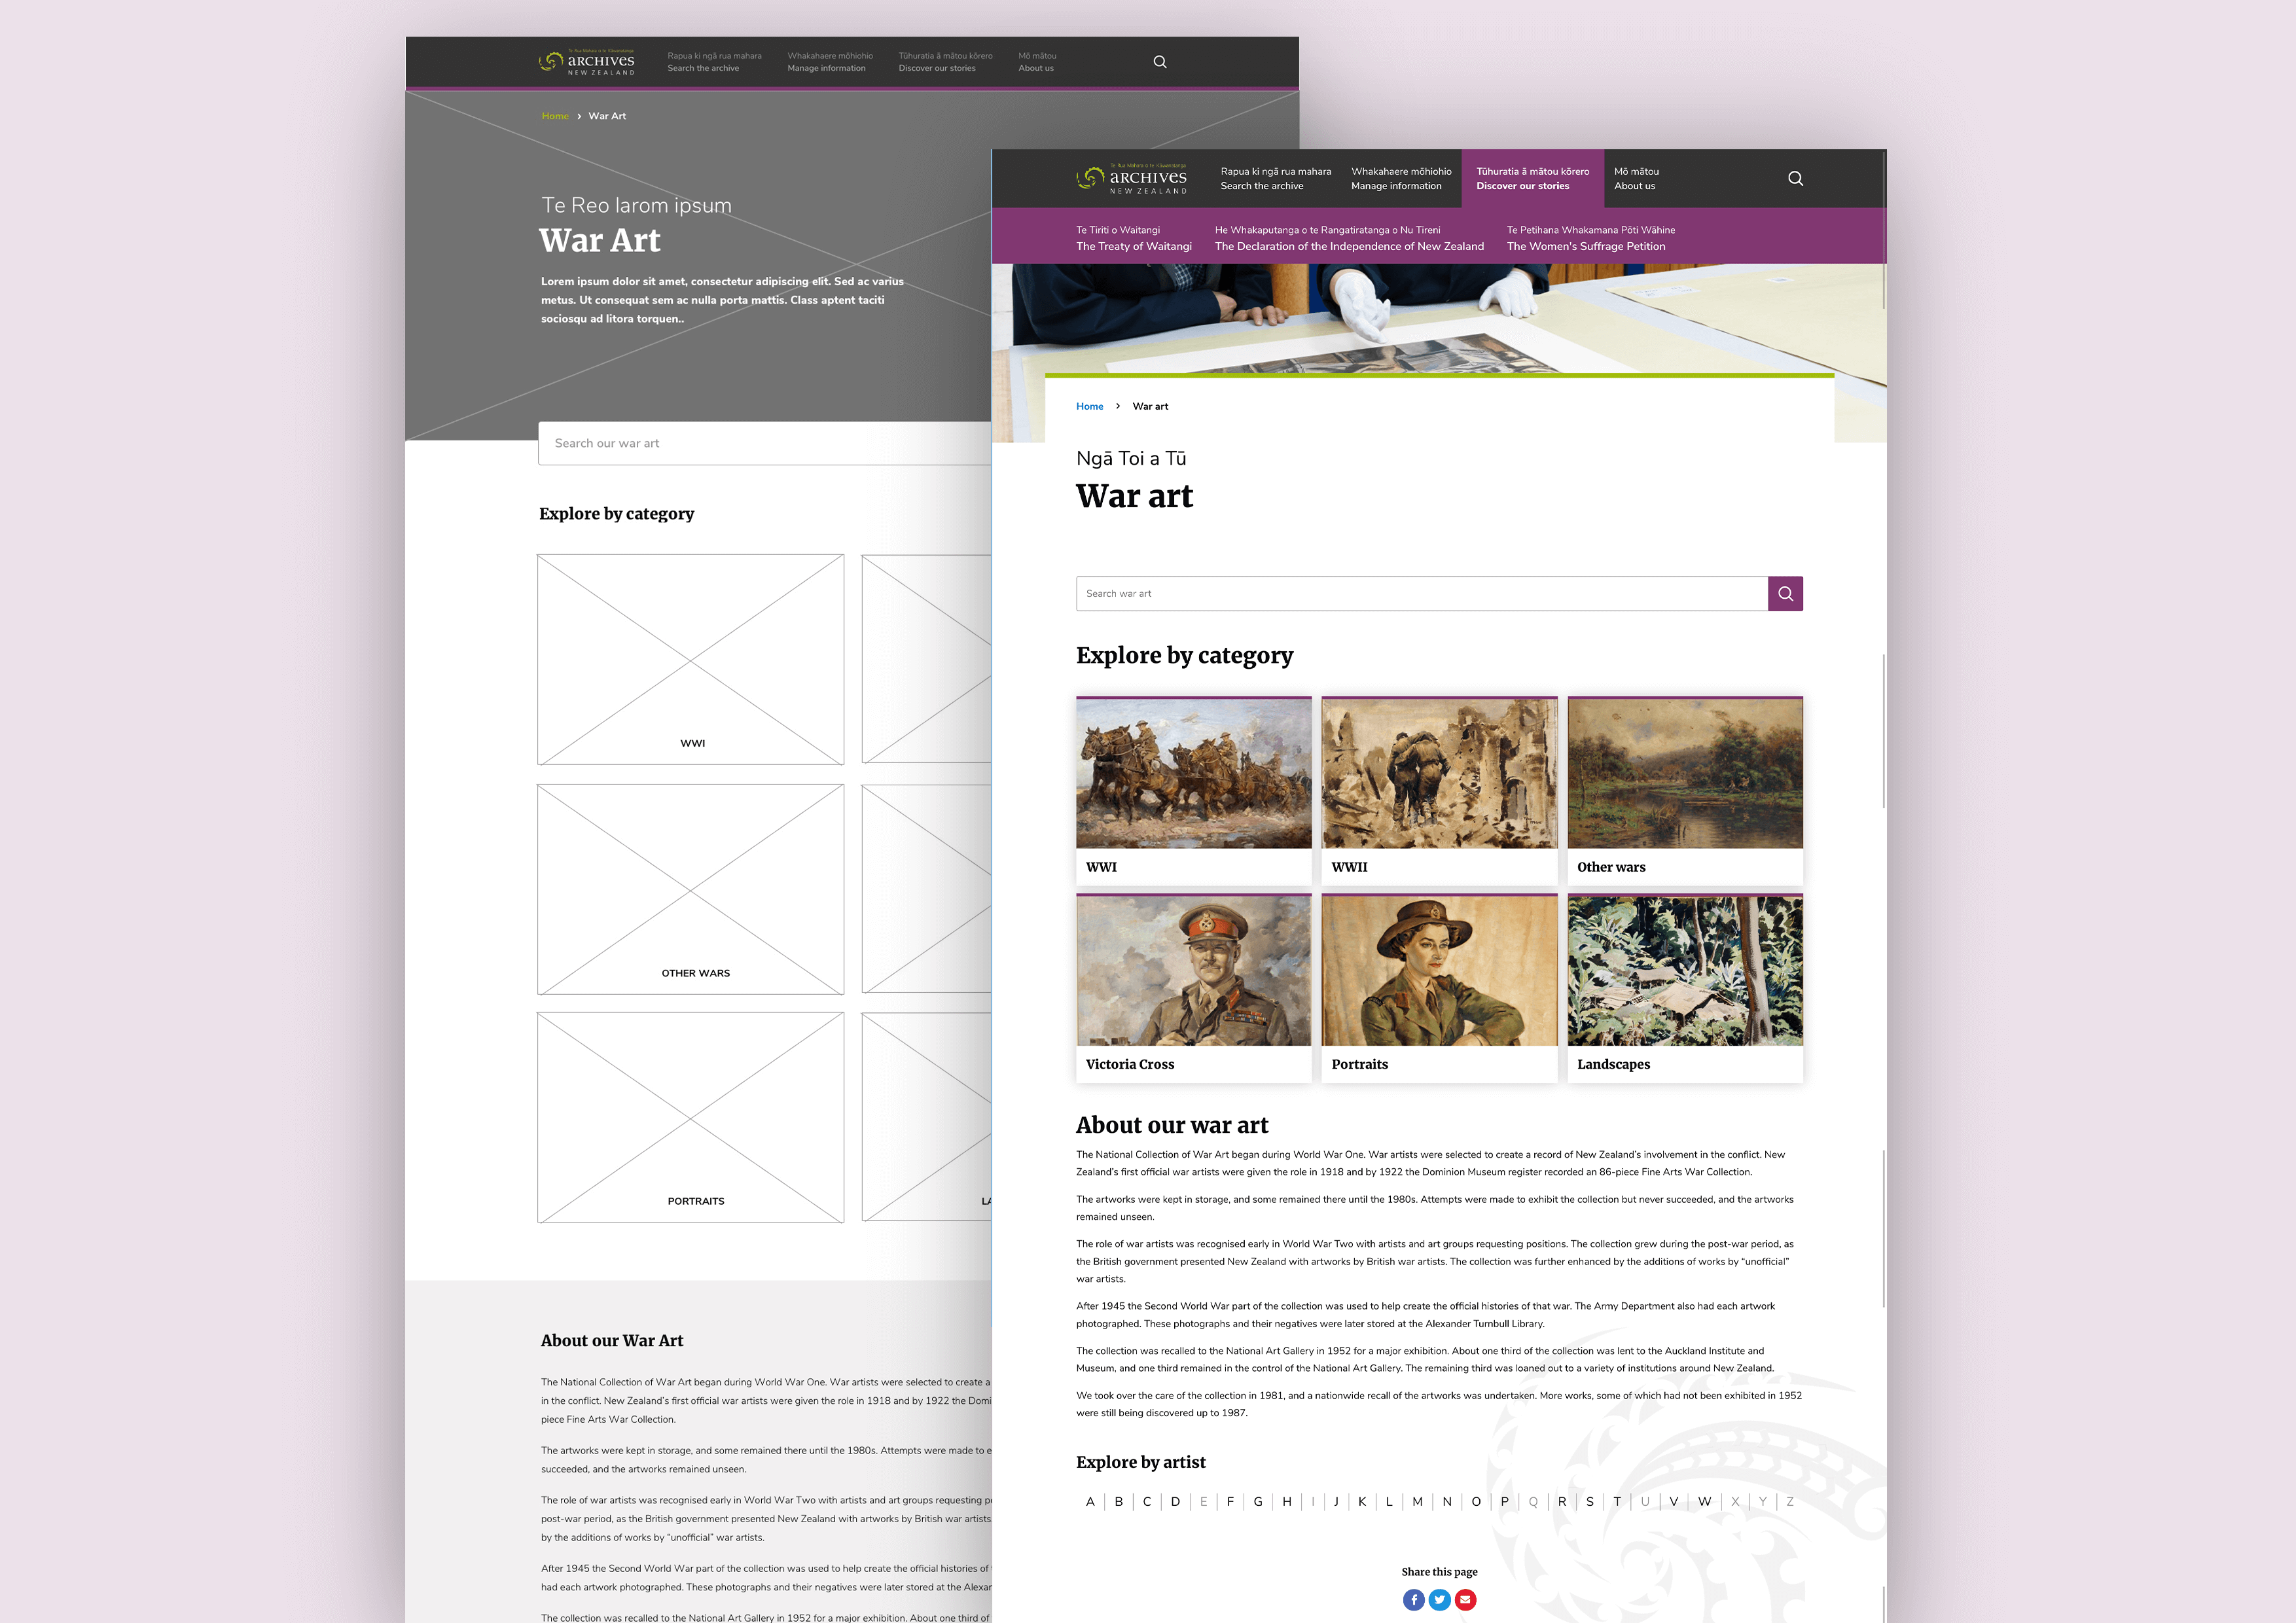 An early low-fidelity greyscale design for the War Art section of the new Archives website, overlaid by the high-fidelity full-colour design.